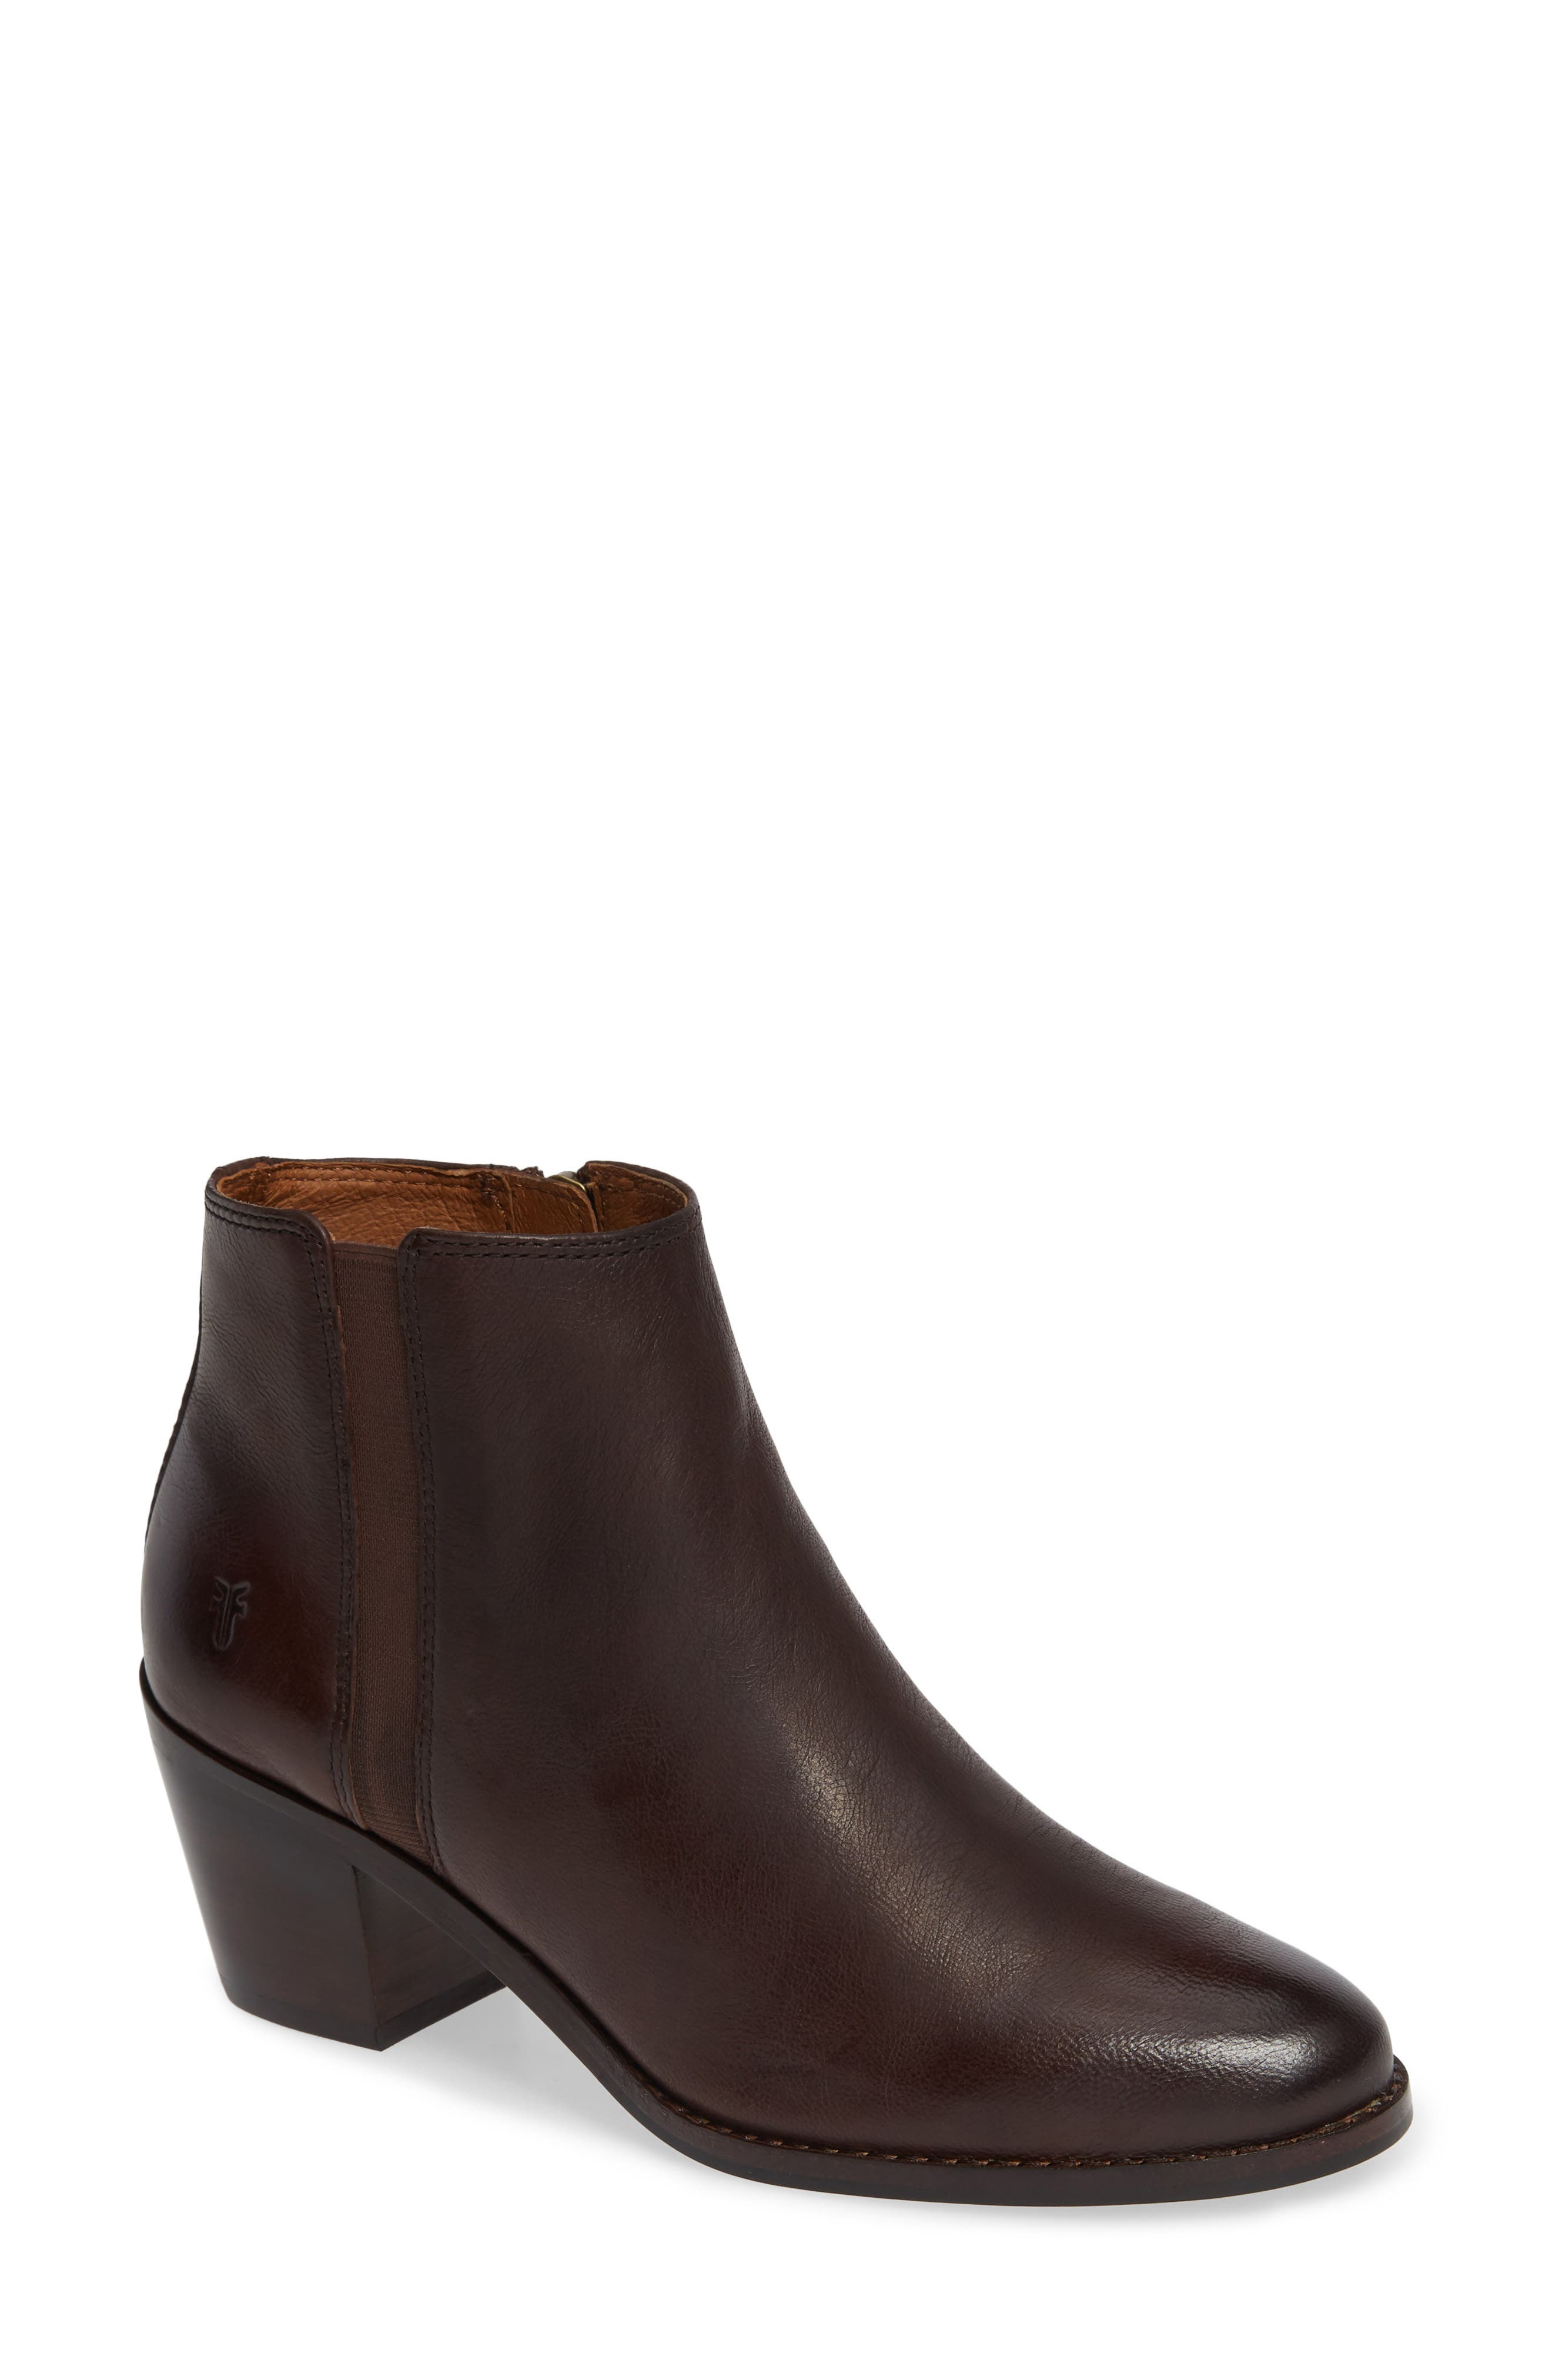 Frye Jolene Ankle Bootie- Brown